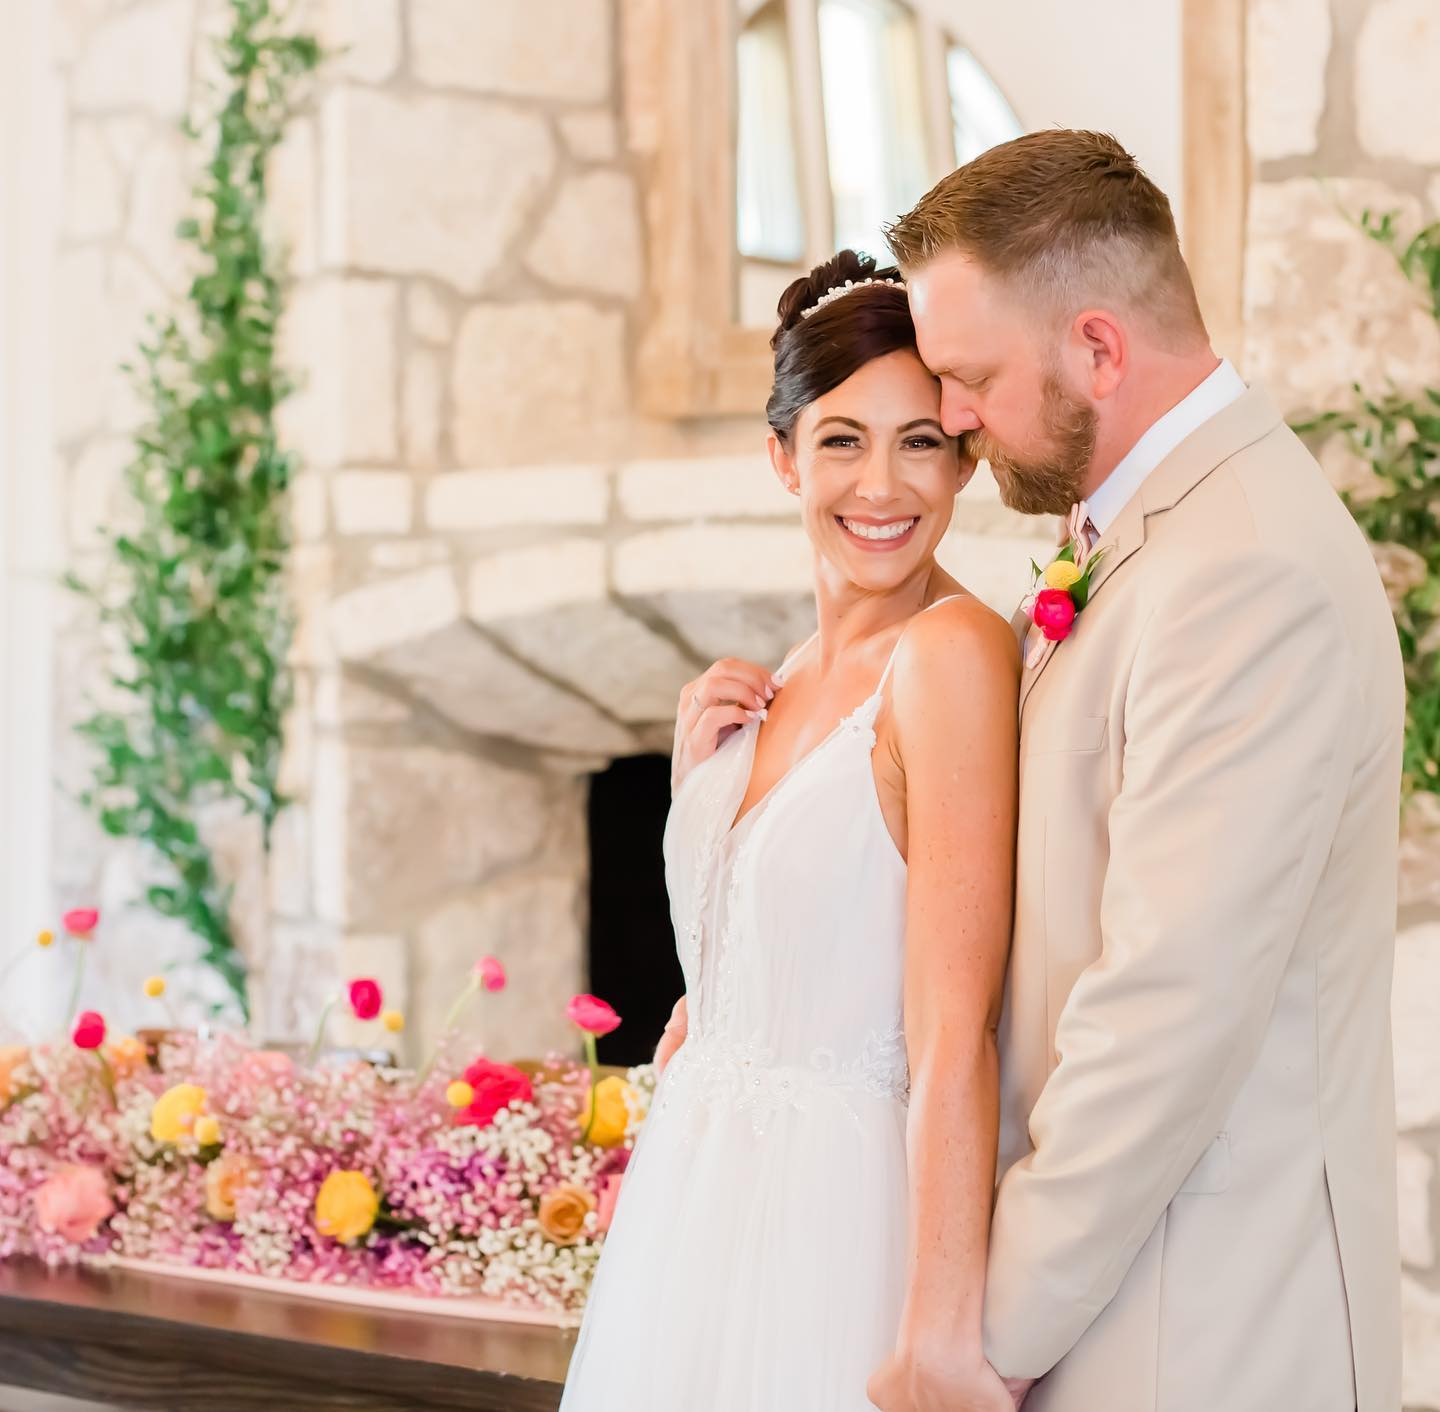 Mayra Eads Photography-BridalBuzz-San Antonio Weddings